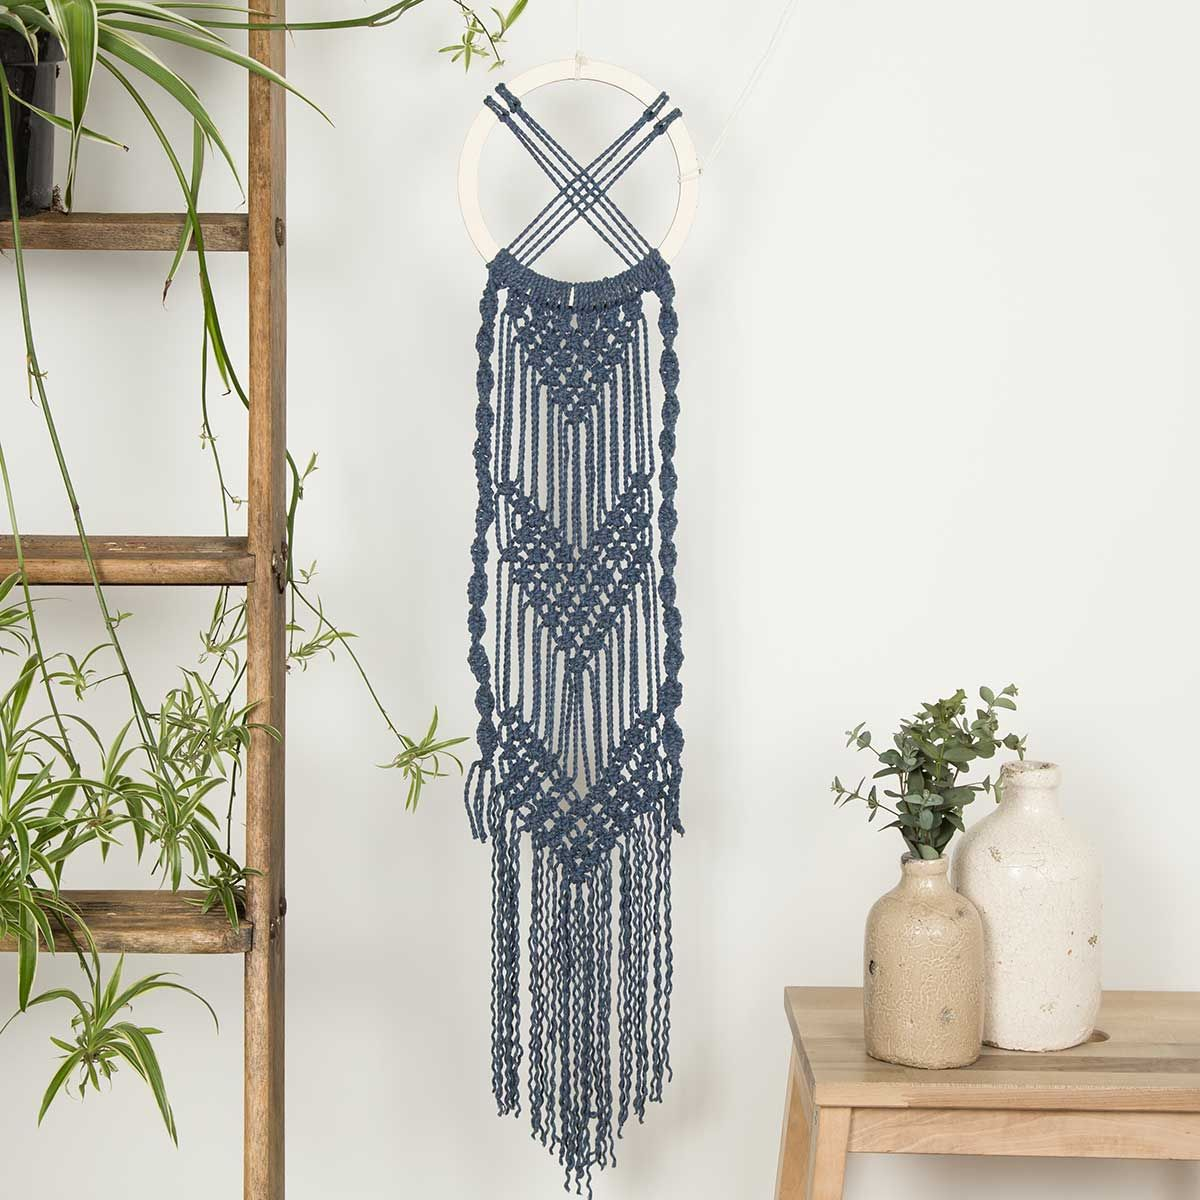 Celtic wall hanging macrame kit by wool couture macrame